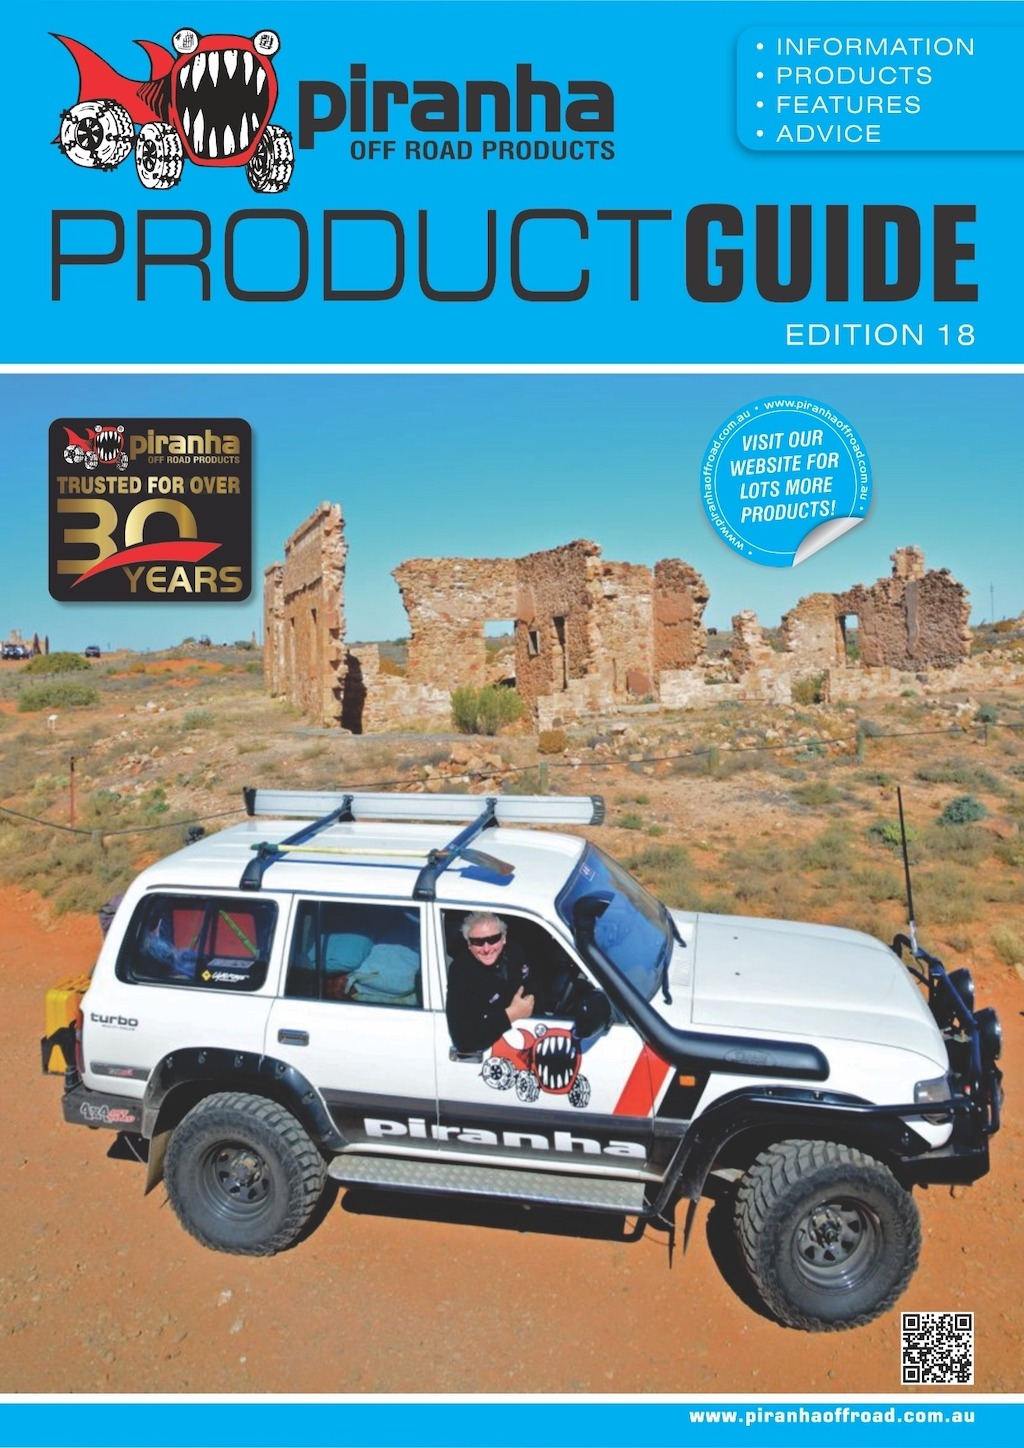 Piranha Off Road Product shows off expanded product portfolio